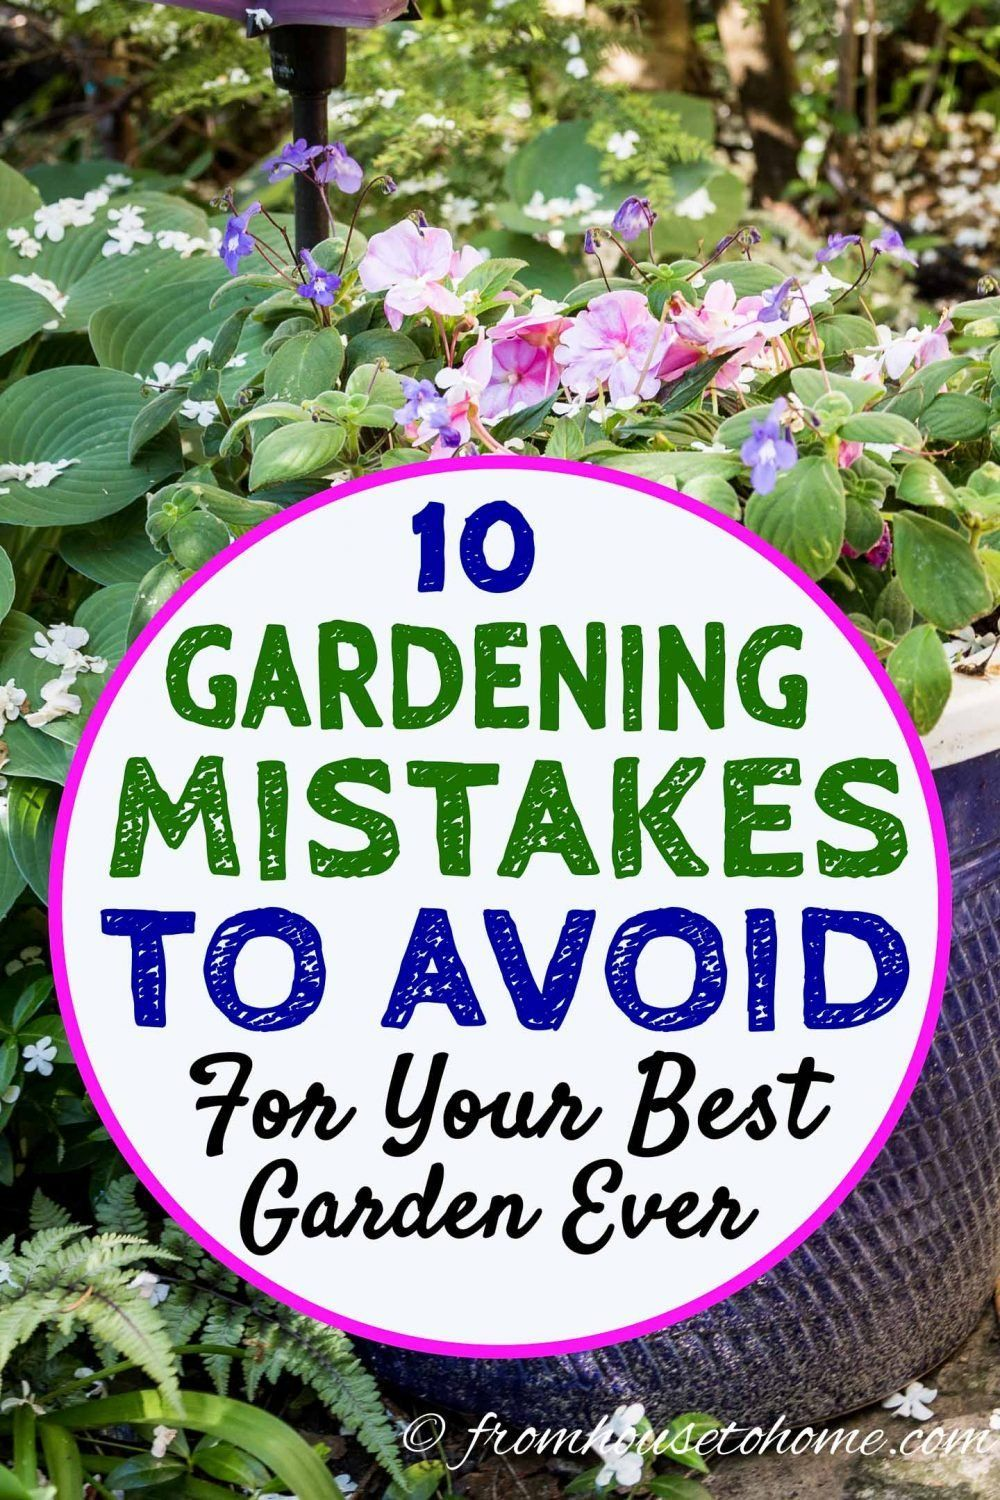 Learn which landscaping mistakes to avoid. Whether you're a beginning gardener or a seasoned pro, these tips for preventing gardening mistakes will help you create your best garden ever. #fromhousetohome #gardeningtips #gardening #gardenlandscaping  #gardeningforbeginners #summerinspiration